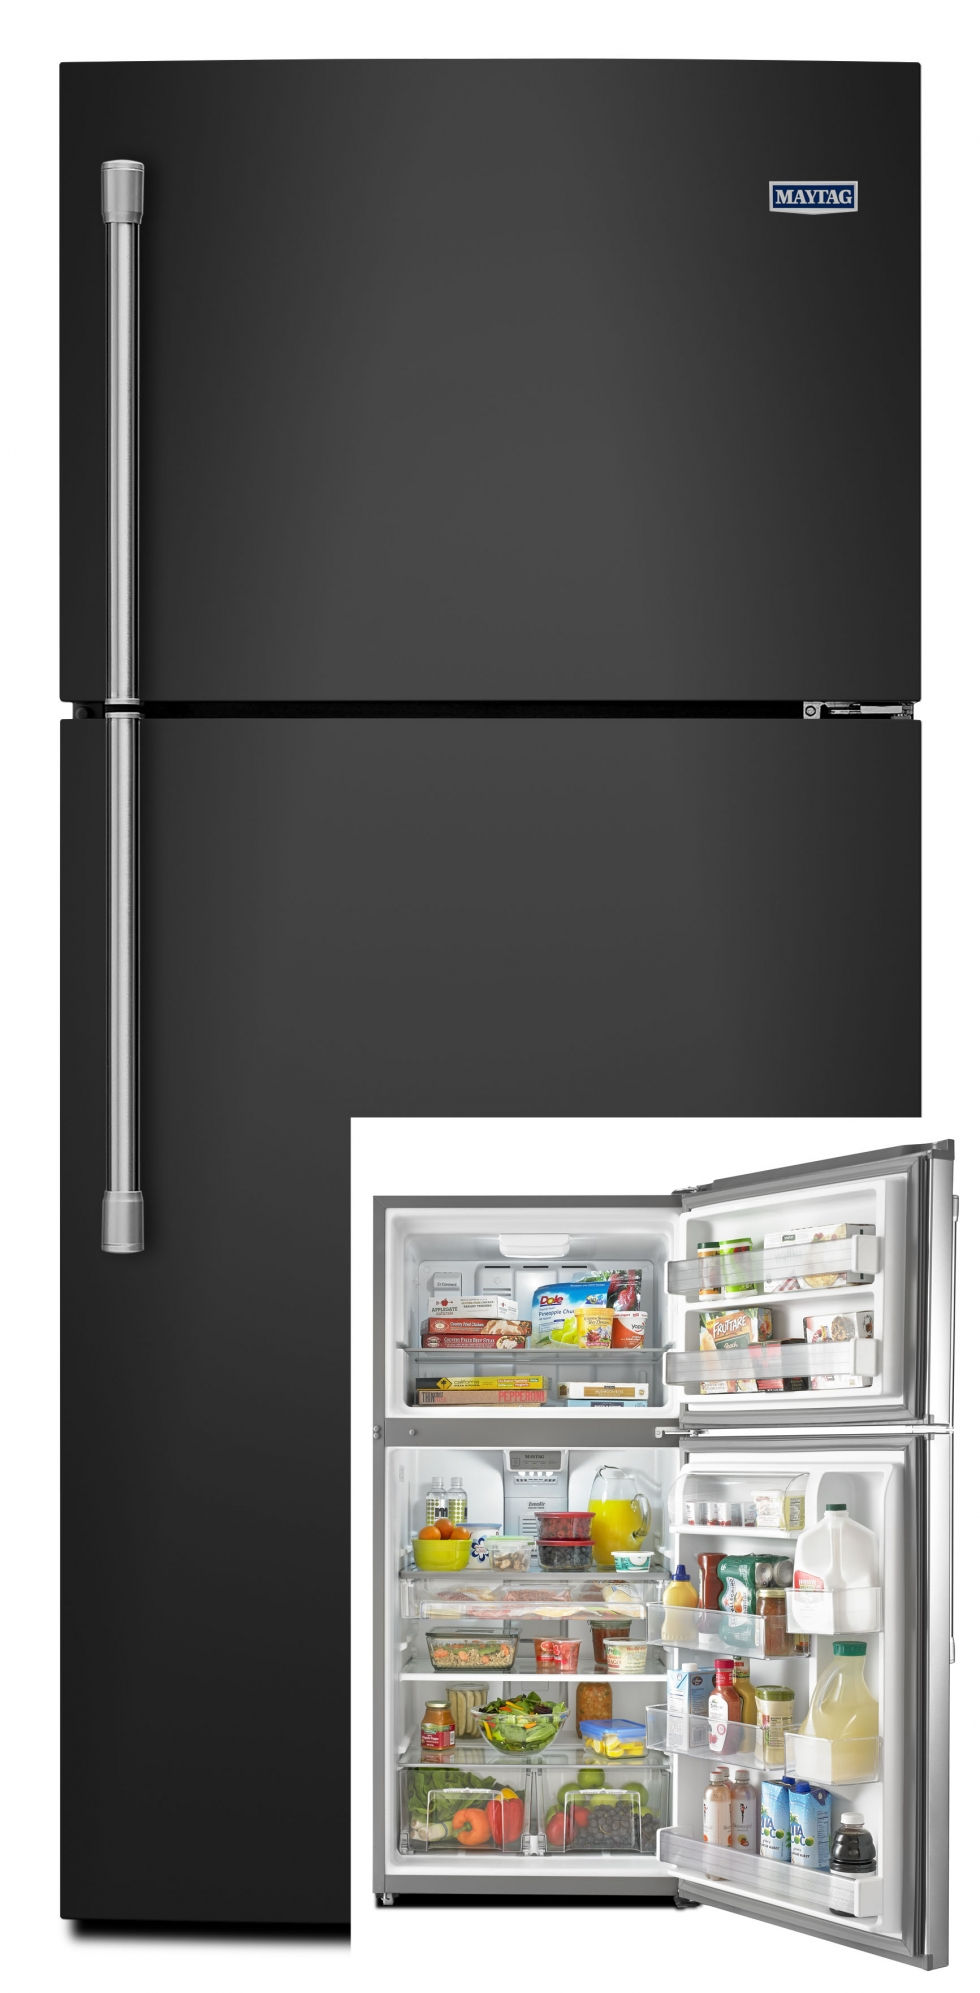 Maytag Top Freezer Refrigerator Black Start Saving Today